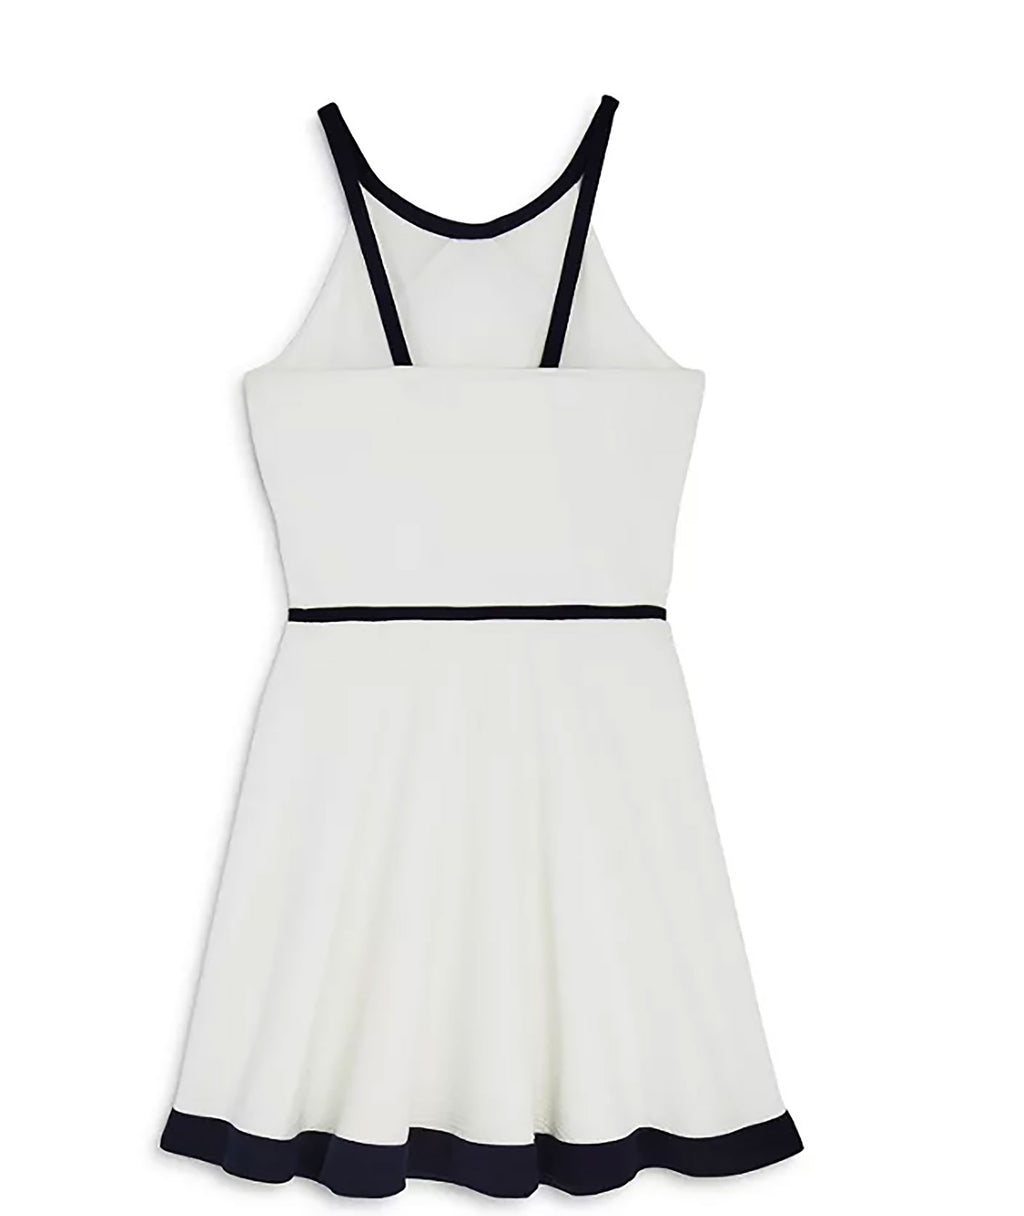 Sally Miller Newport Dress